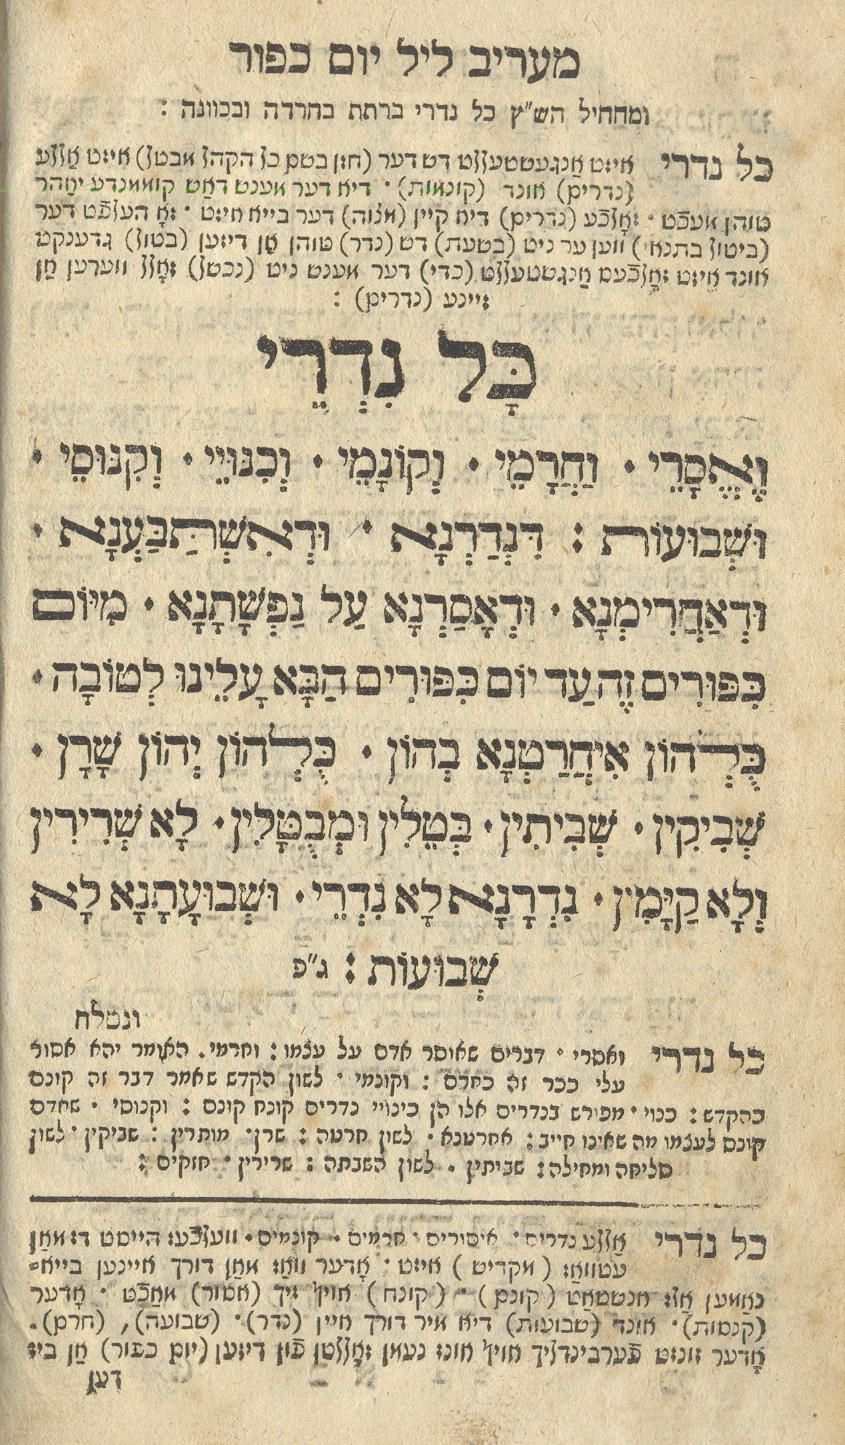 Kol Nidre prayer printed by Zvi Hirsch Spitz Segal; Machor to Yom Kippur